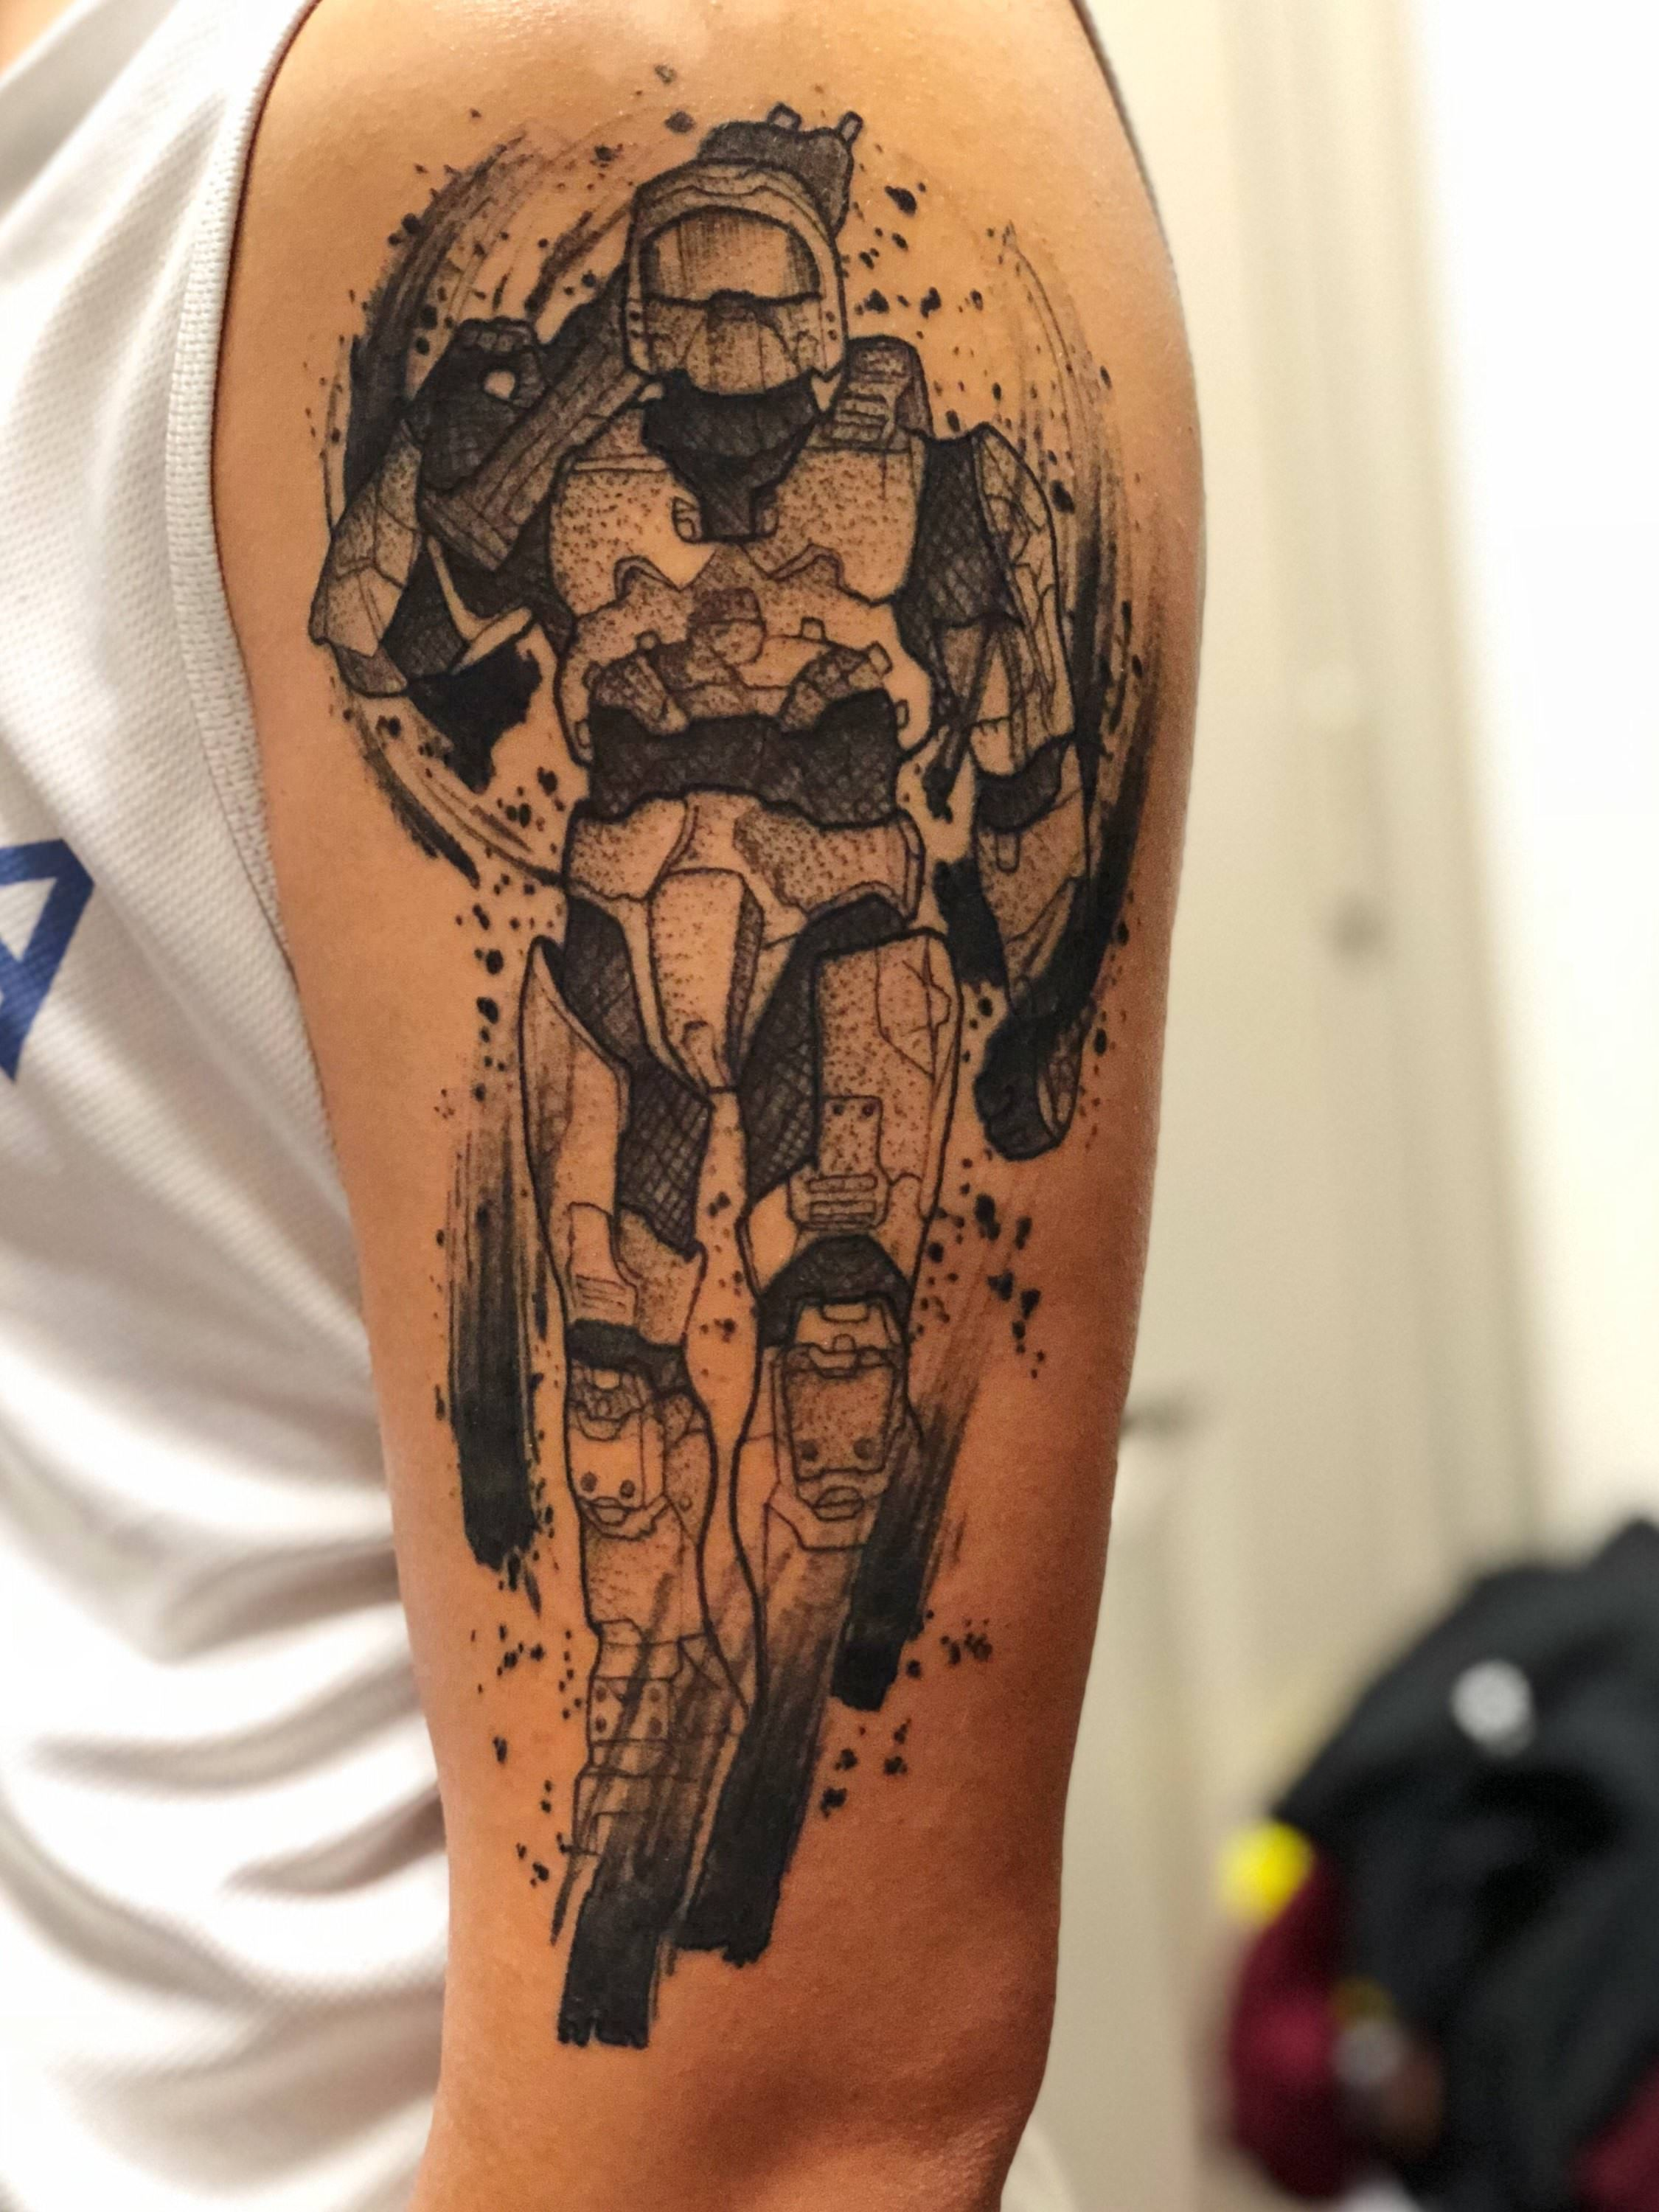 Master chief by ringo at red dagger studio in houston tx